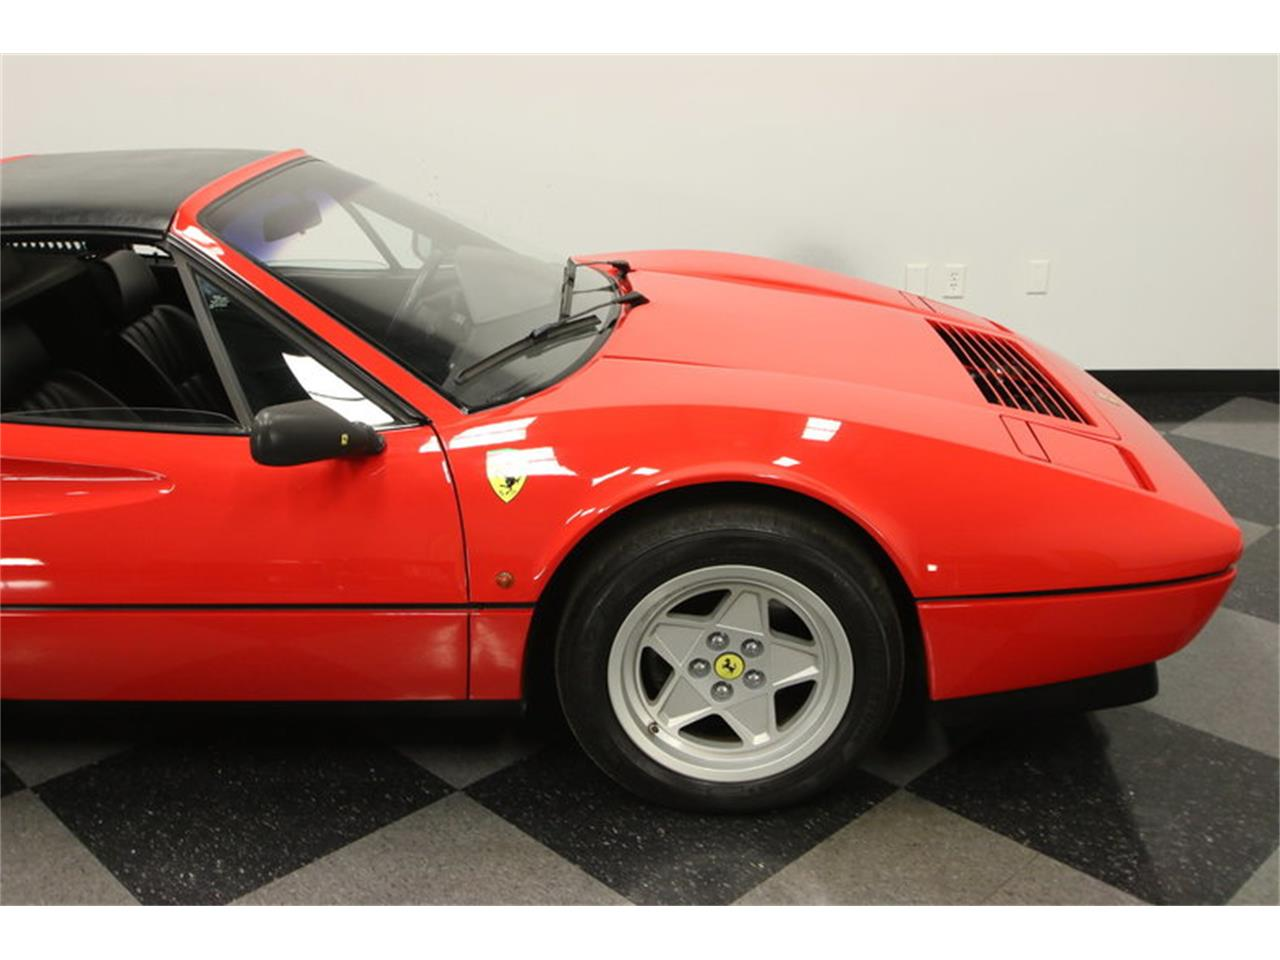 Large Picture of 1988 328 GTS located in Florida - $69,995.00 Offered by Streetside Classics - Tampa - MO3Z